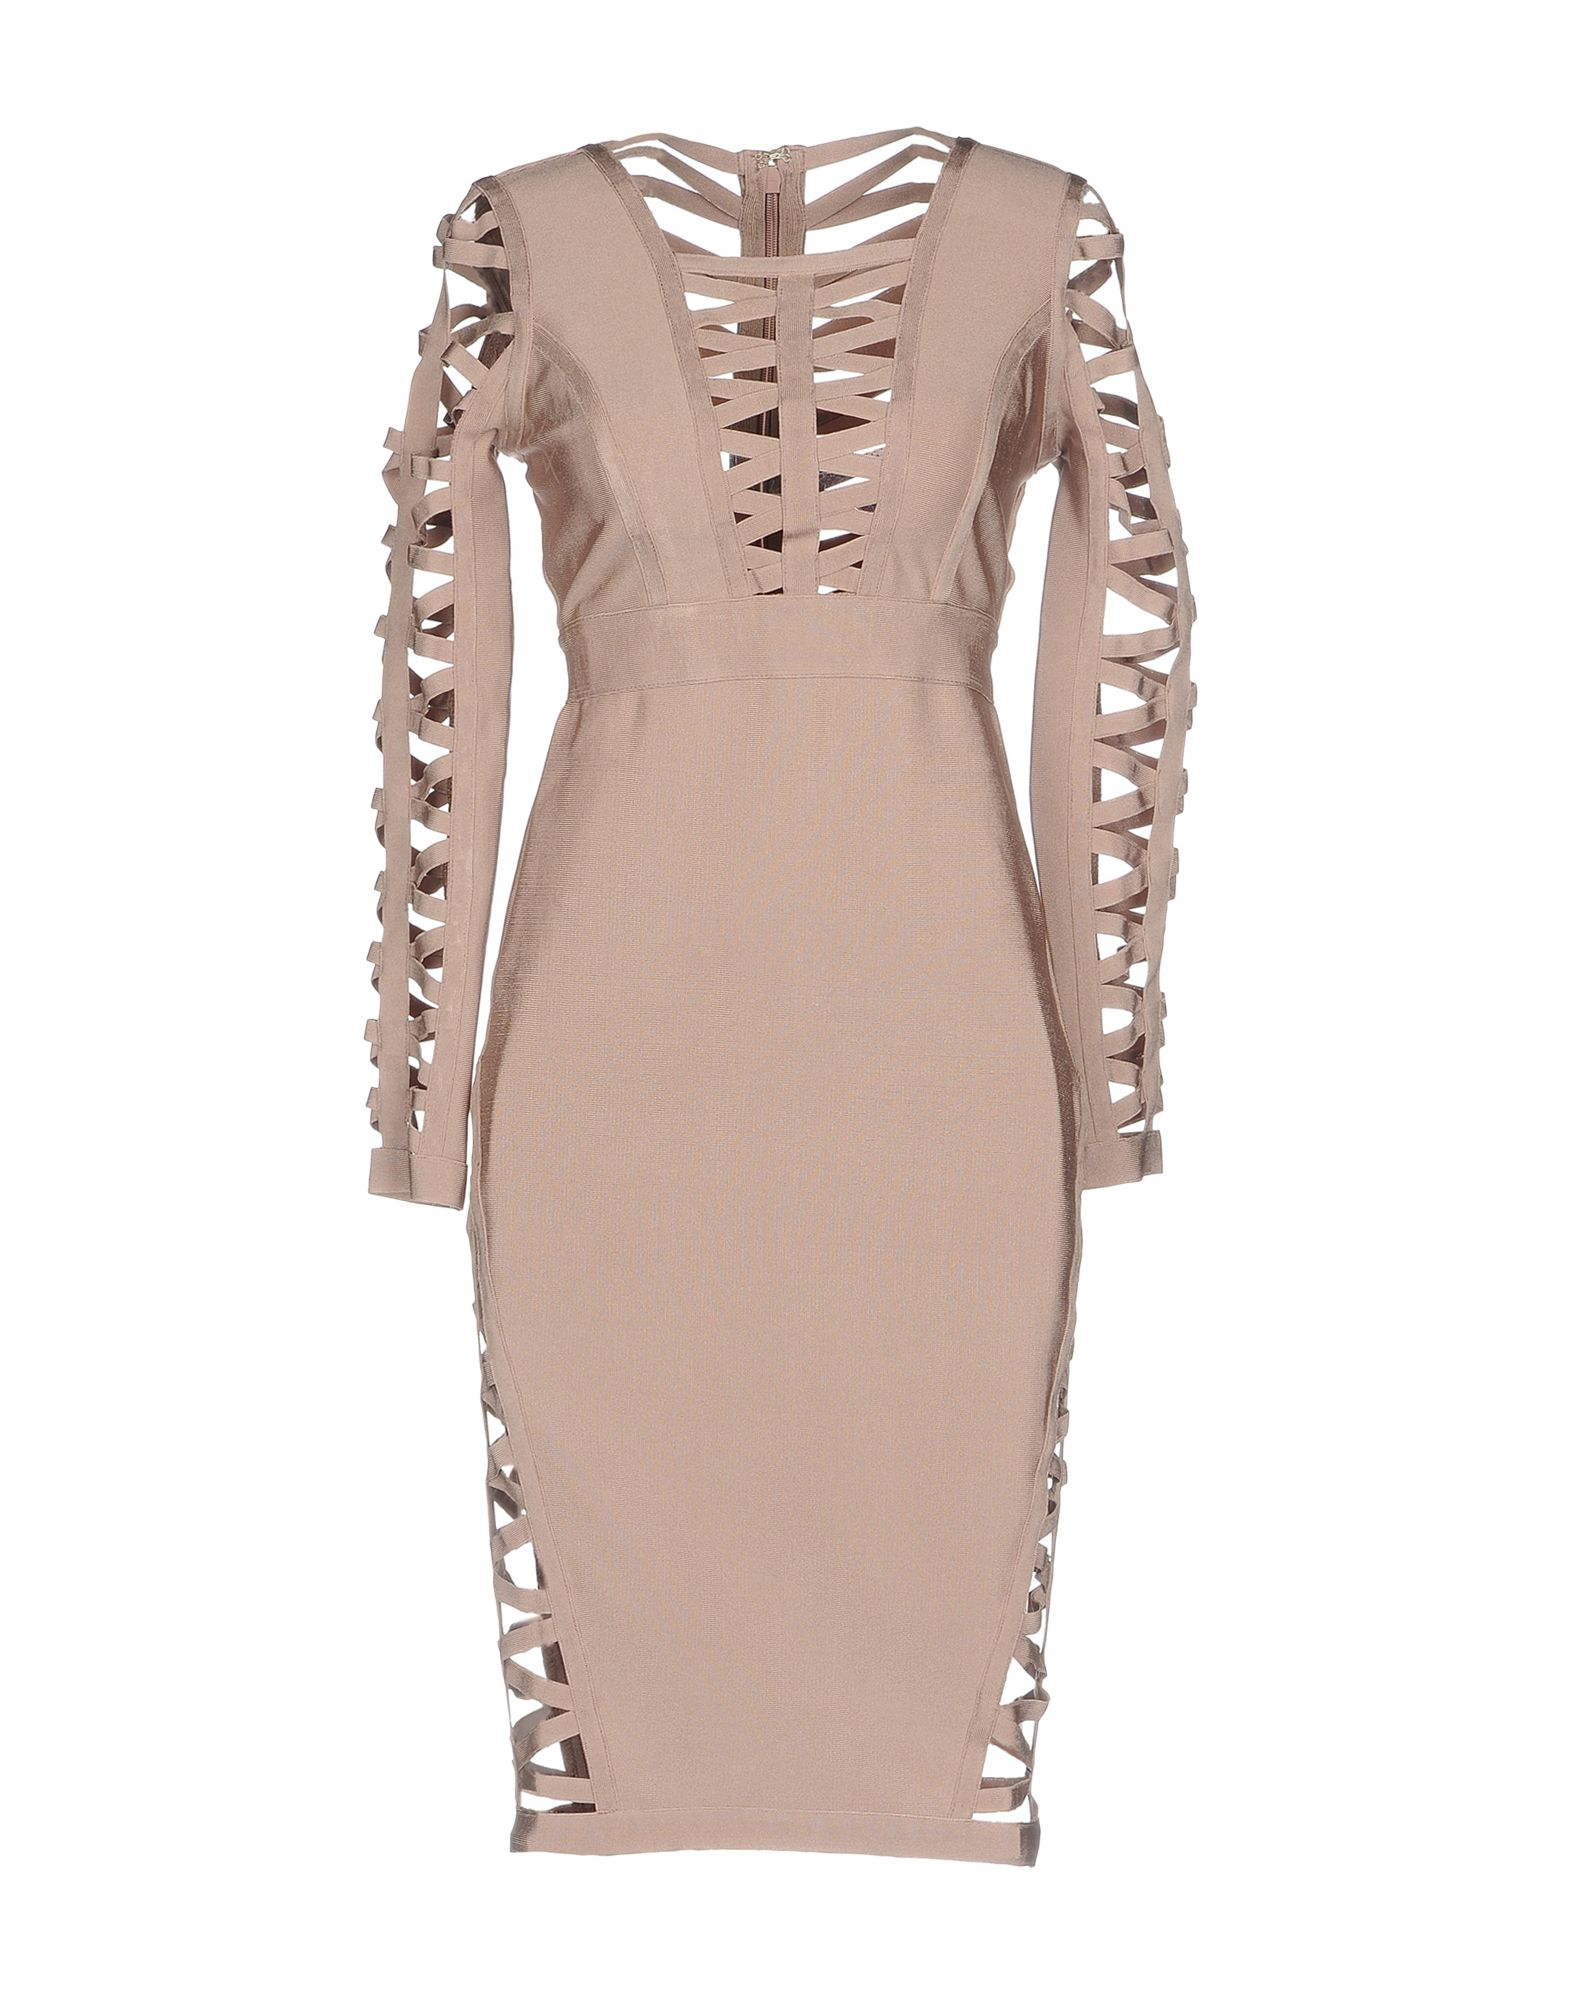 WOW COUTURE Knee-Length Dress in Pink